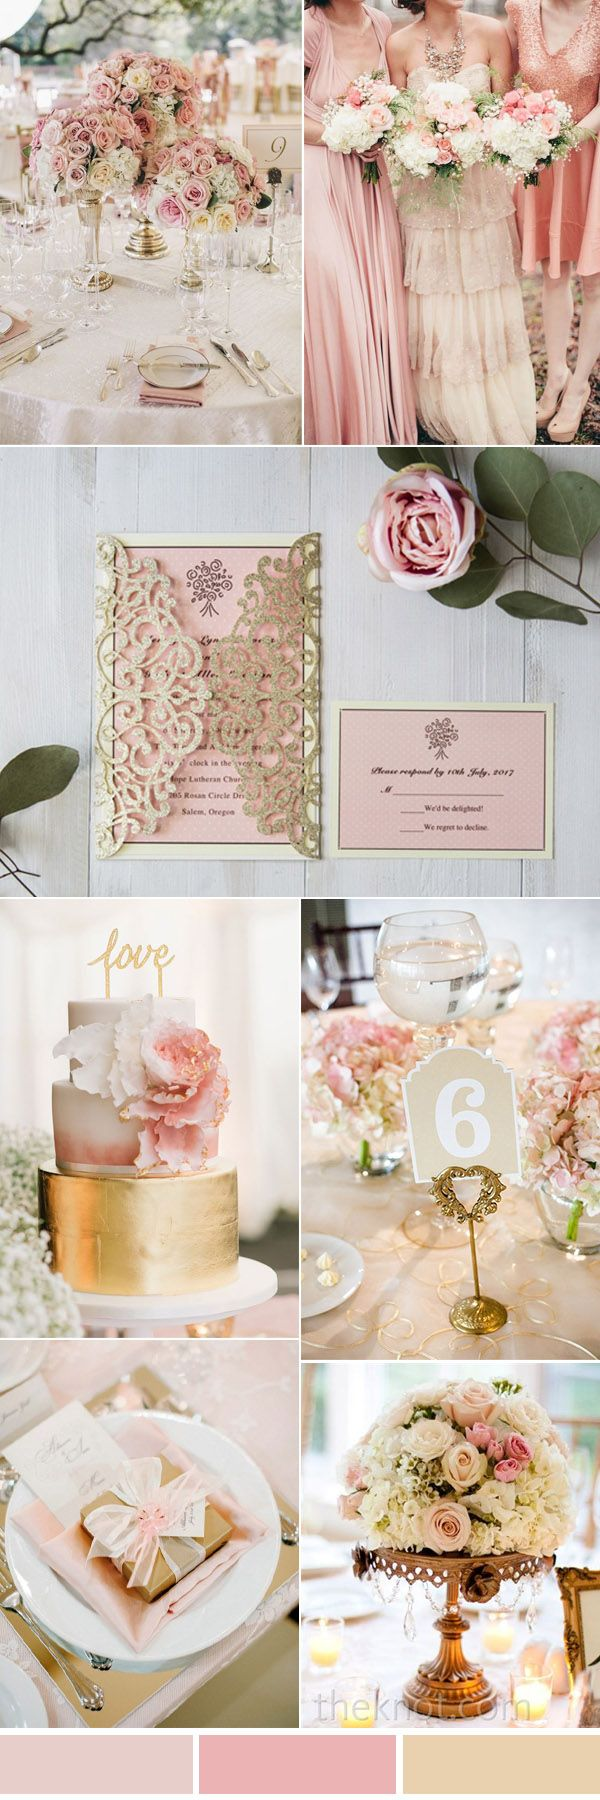 2385 best Wedding Styles images on Pinterest | Weddings, Biscuit and ...